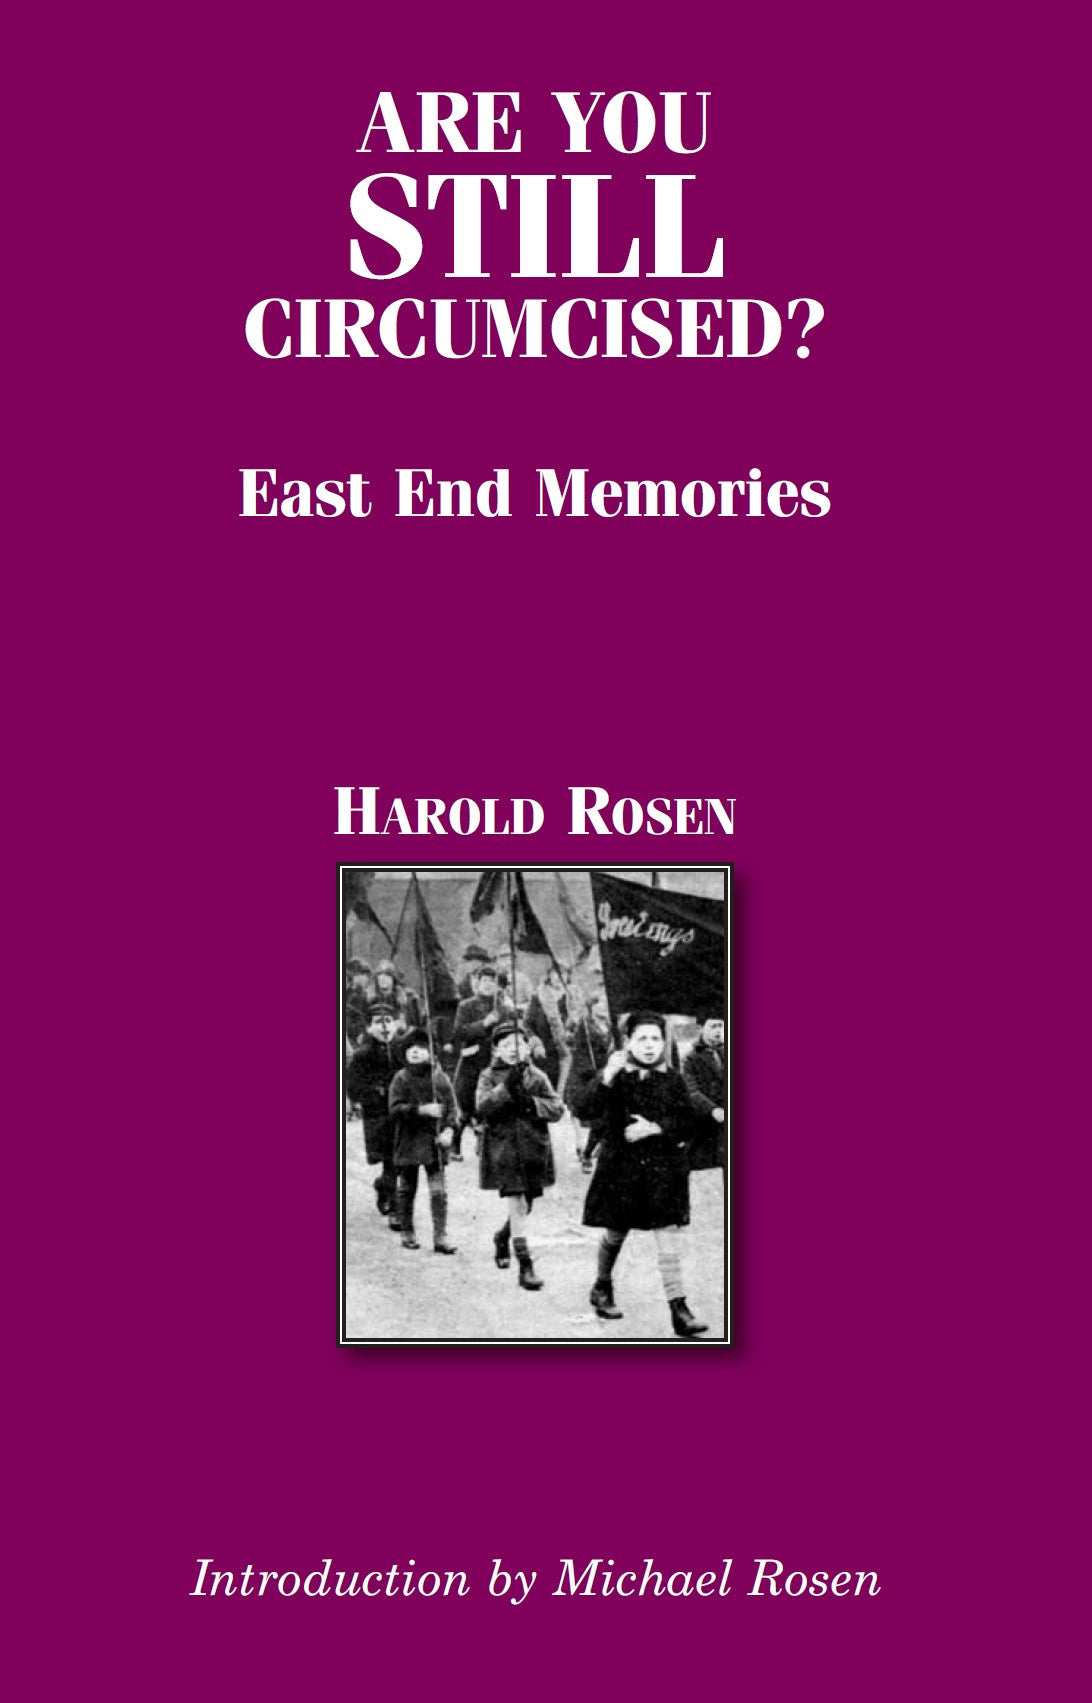 Are You Still Circumcised? East End Memories